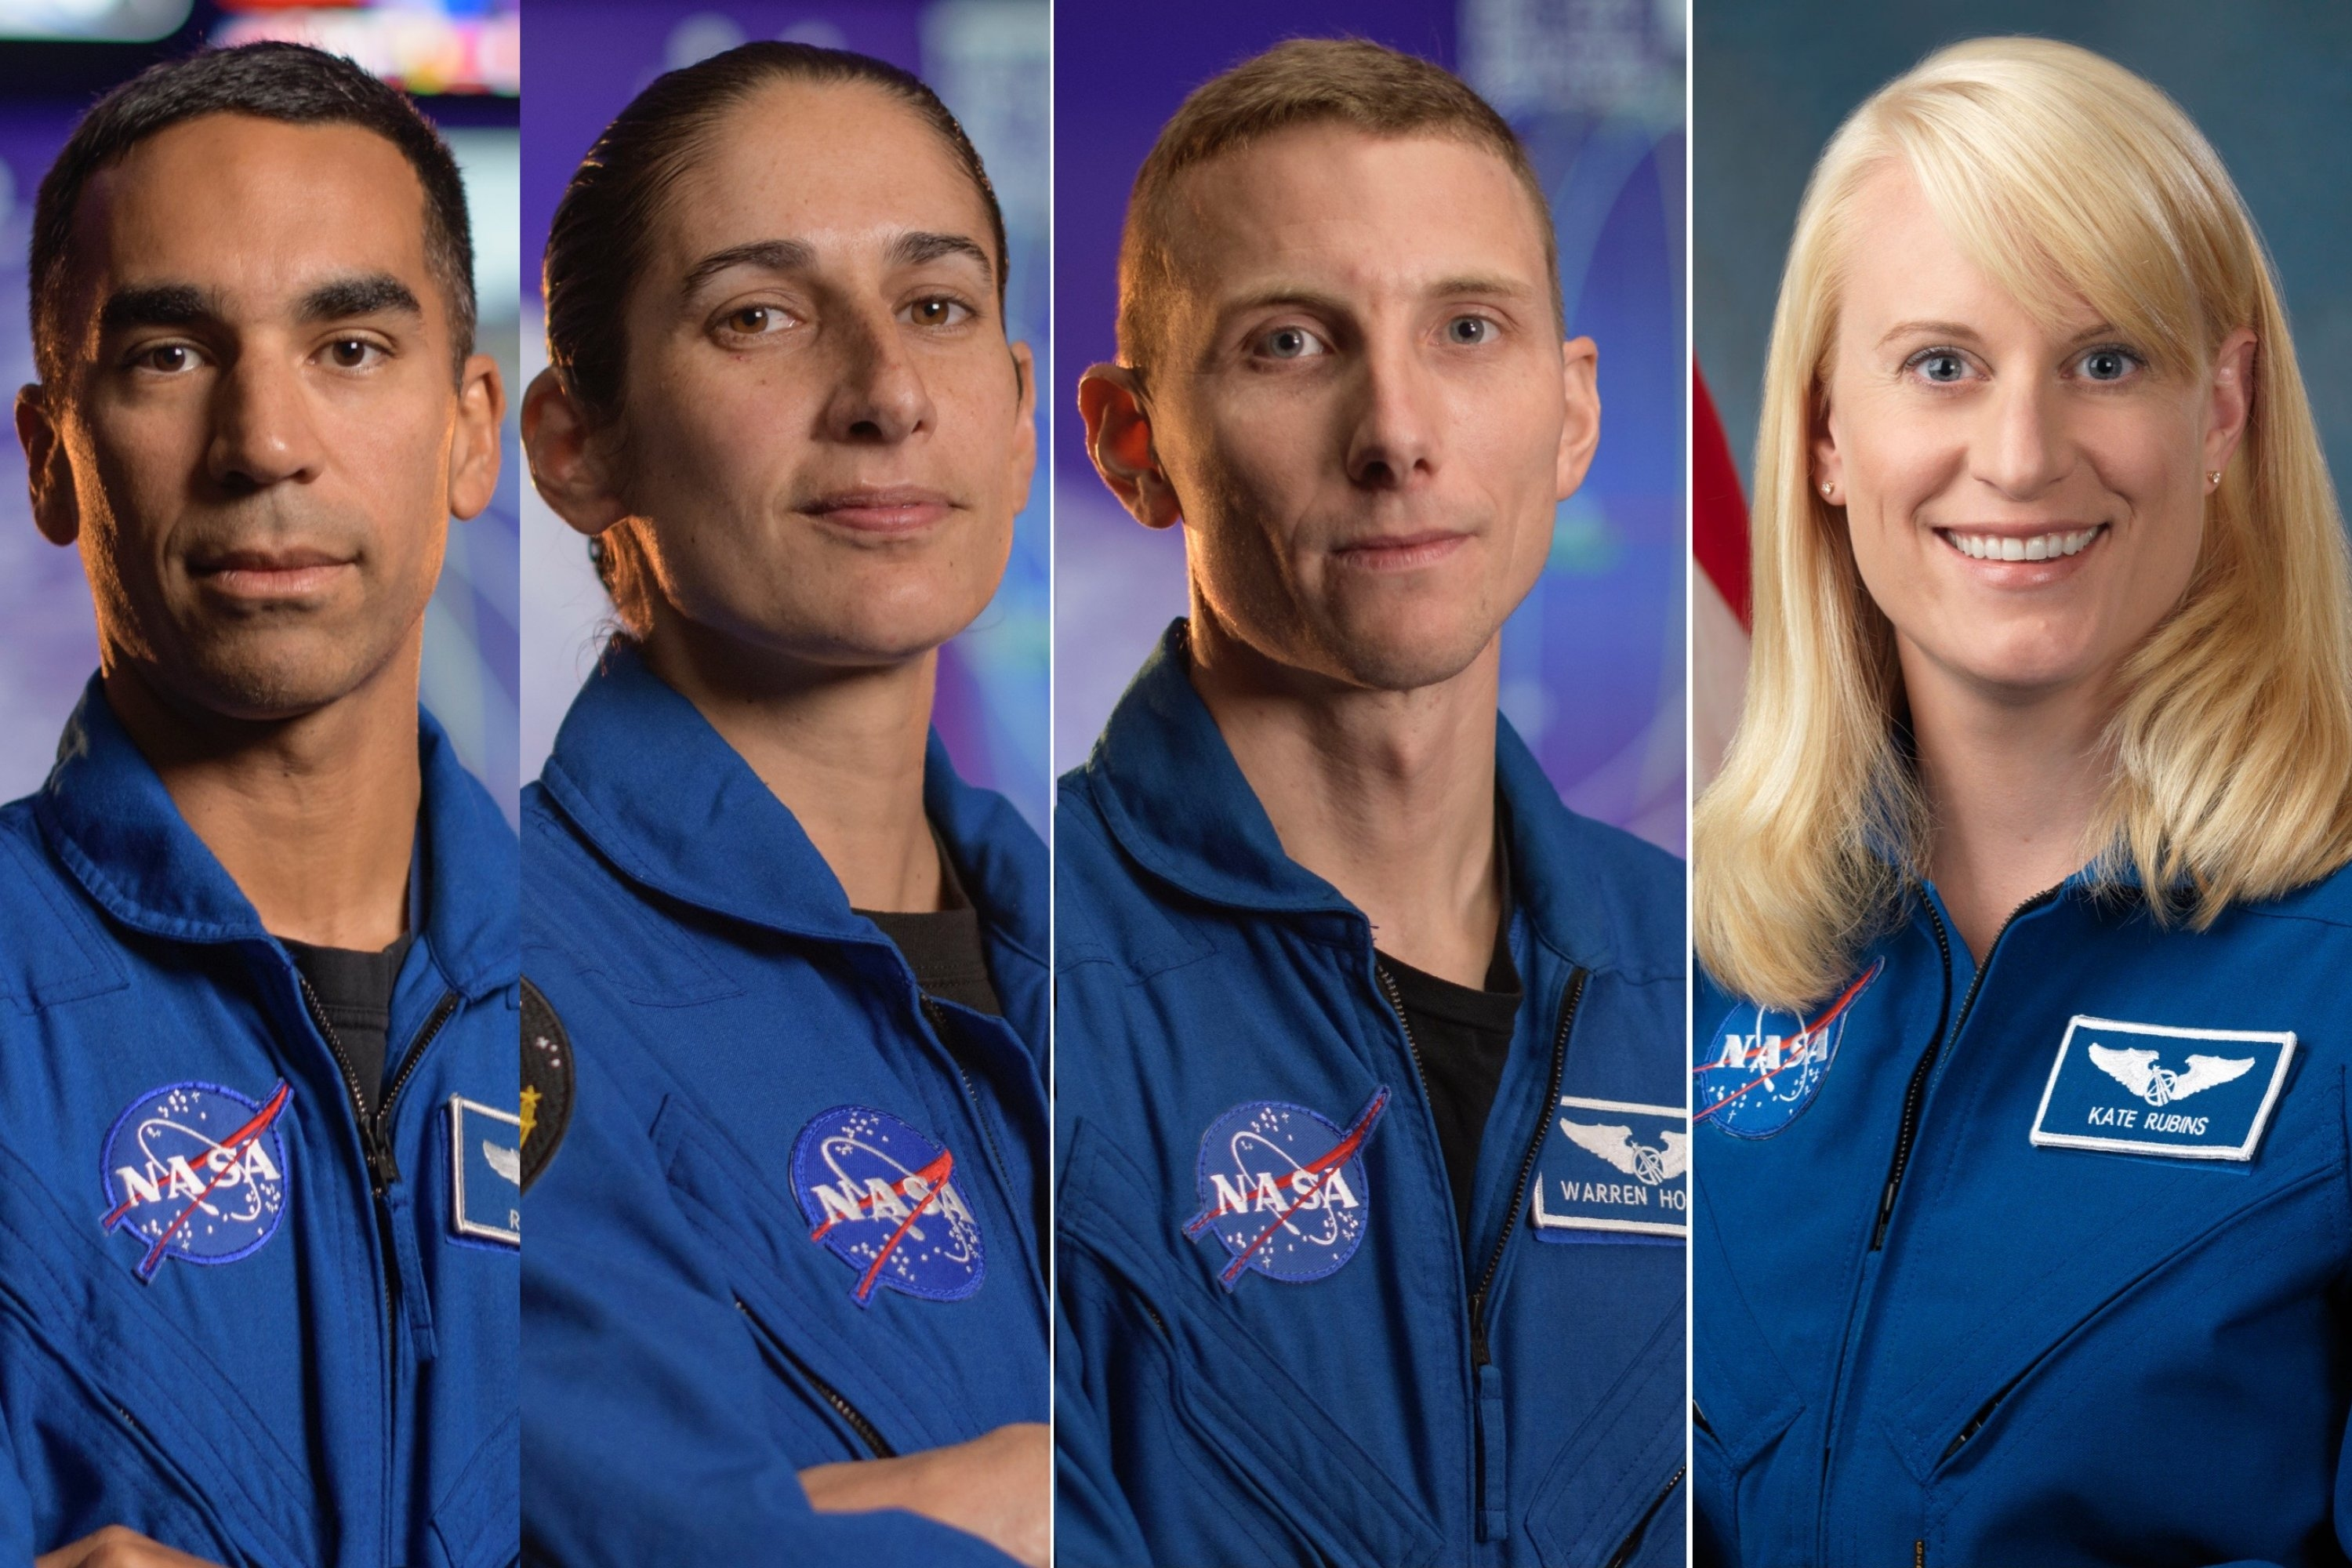 Four astronauts with ties to MIT named to NASA's Artemis team